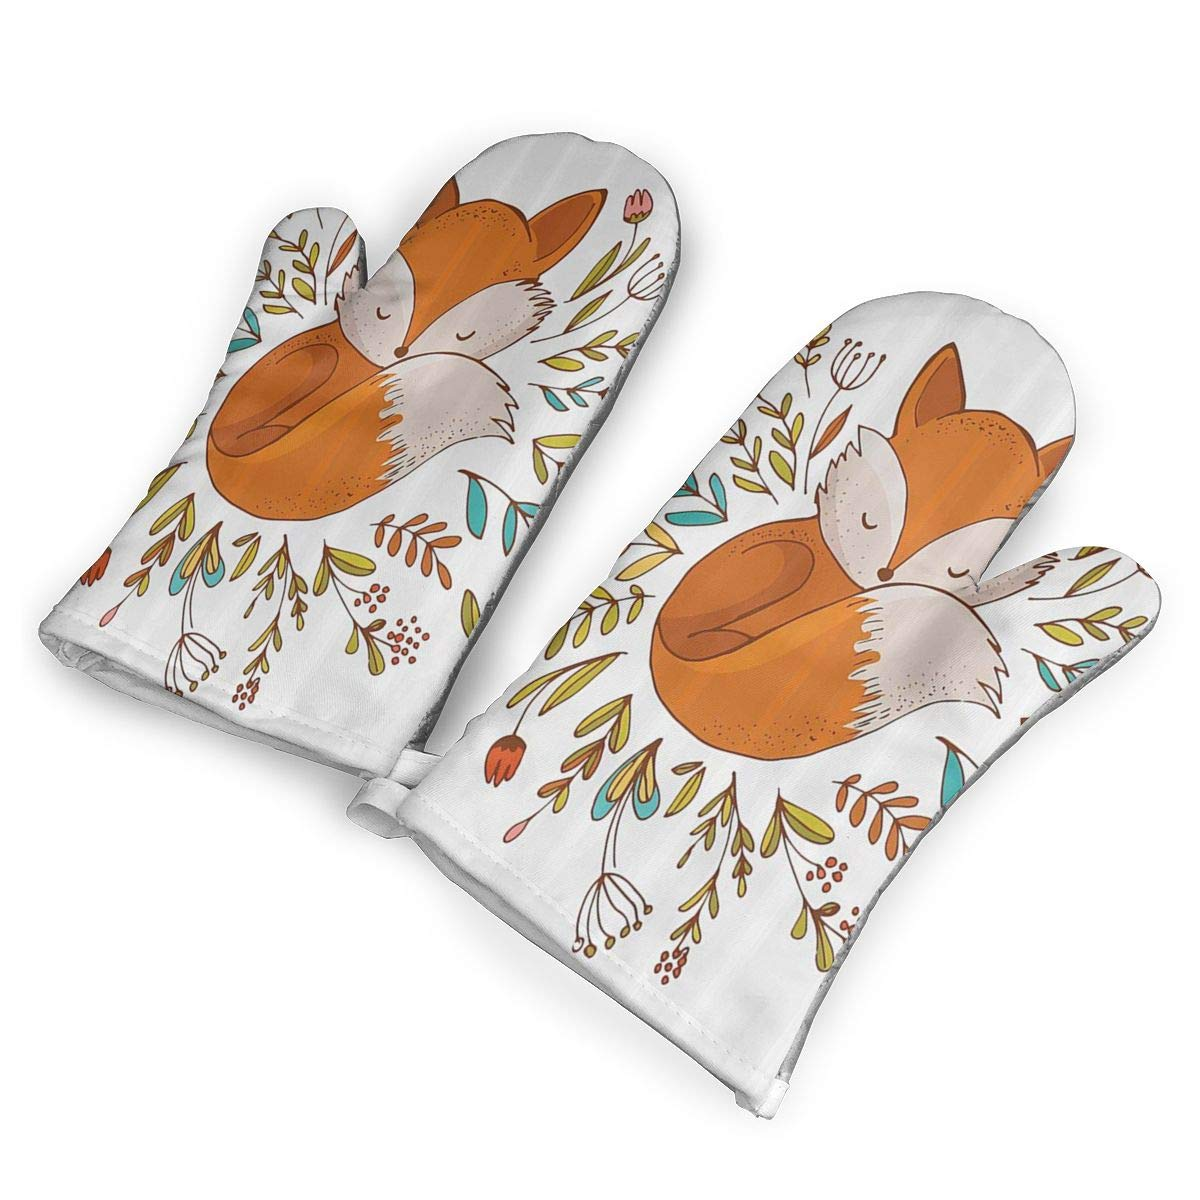 QOQD Cute Baby Fox Sleeping in A Floral Made Bed Circle Art Print Oven Mitts with Polyester Fabric Printed Pattern,1 Pair of Heat Resistant Oven Gloves for Cooking,Grilling,Barbecue Potholders